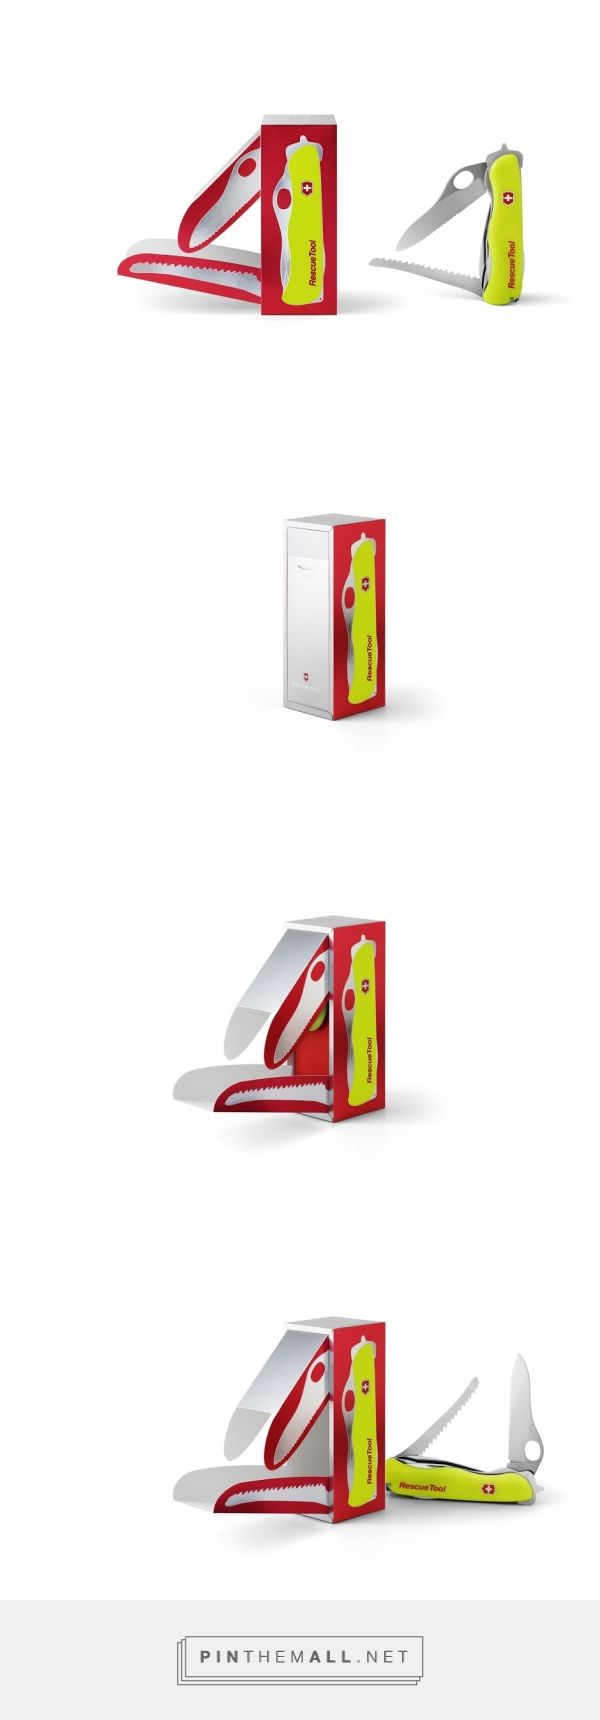 Am I seeing double? Victorinox Rescue Tool packaging design by MetsaBoard - http://www.packagingoftheworld.com/2016/06/victorinox-rescue-tool.html